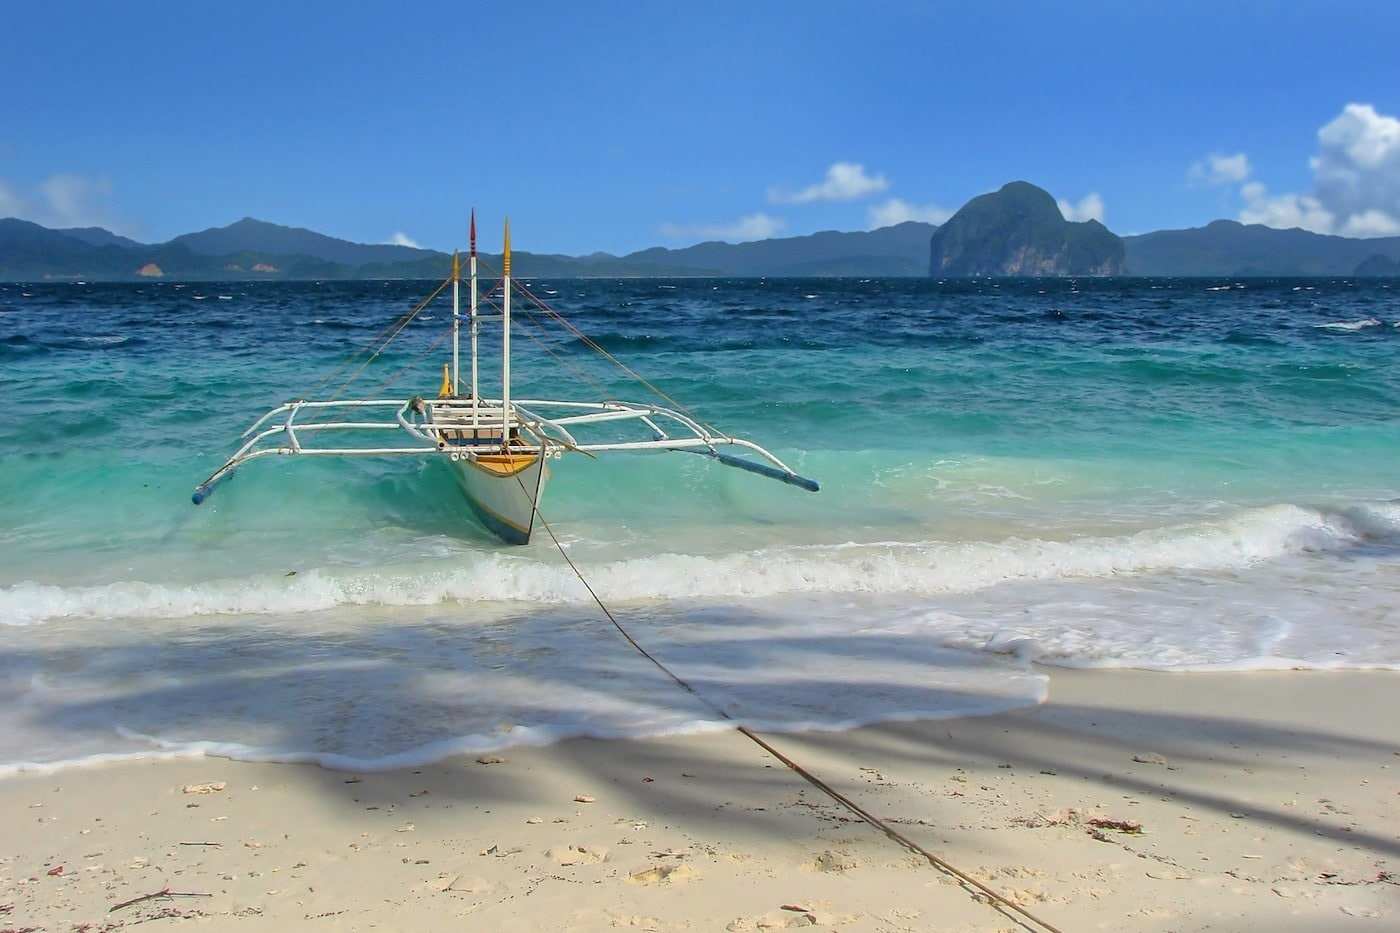 El Nido Tour B by Gabreiel